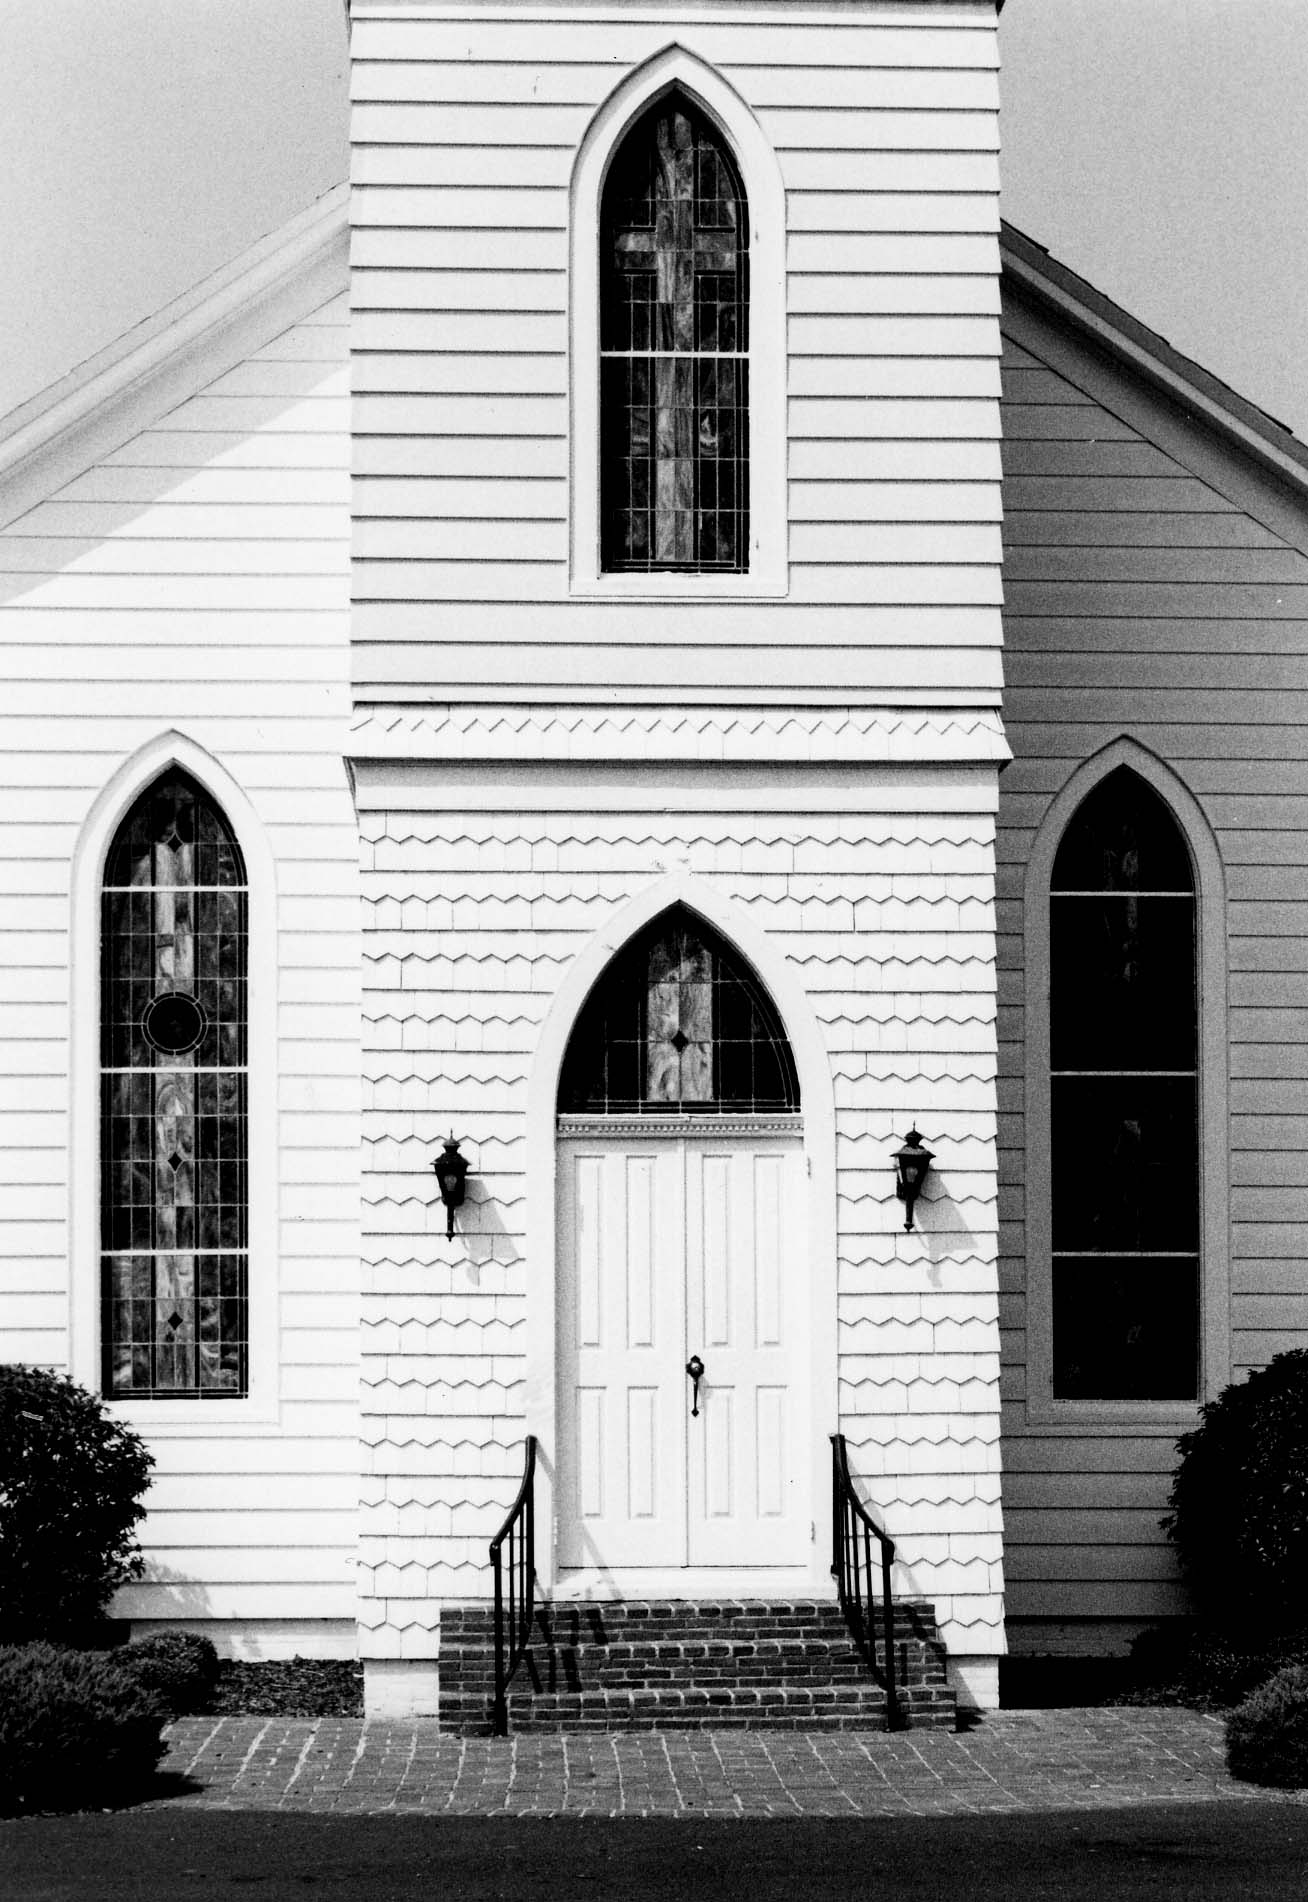 Church, Mathews, VA